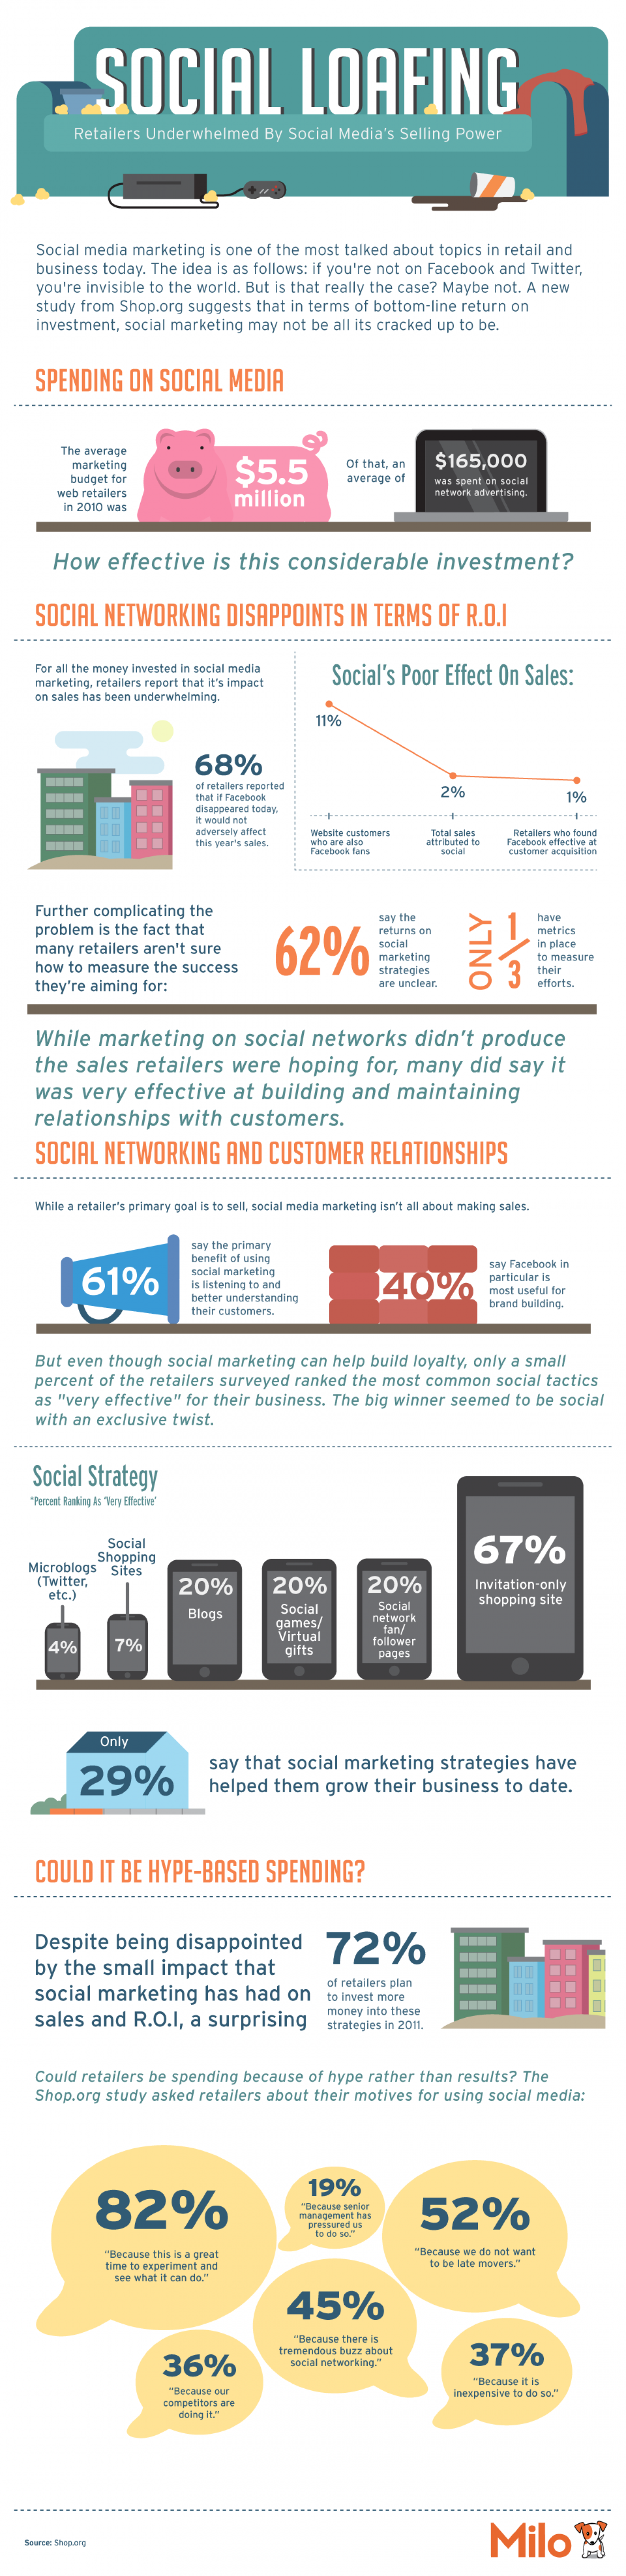 Social Loafing Infographic